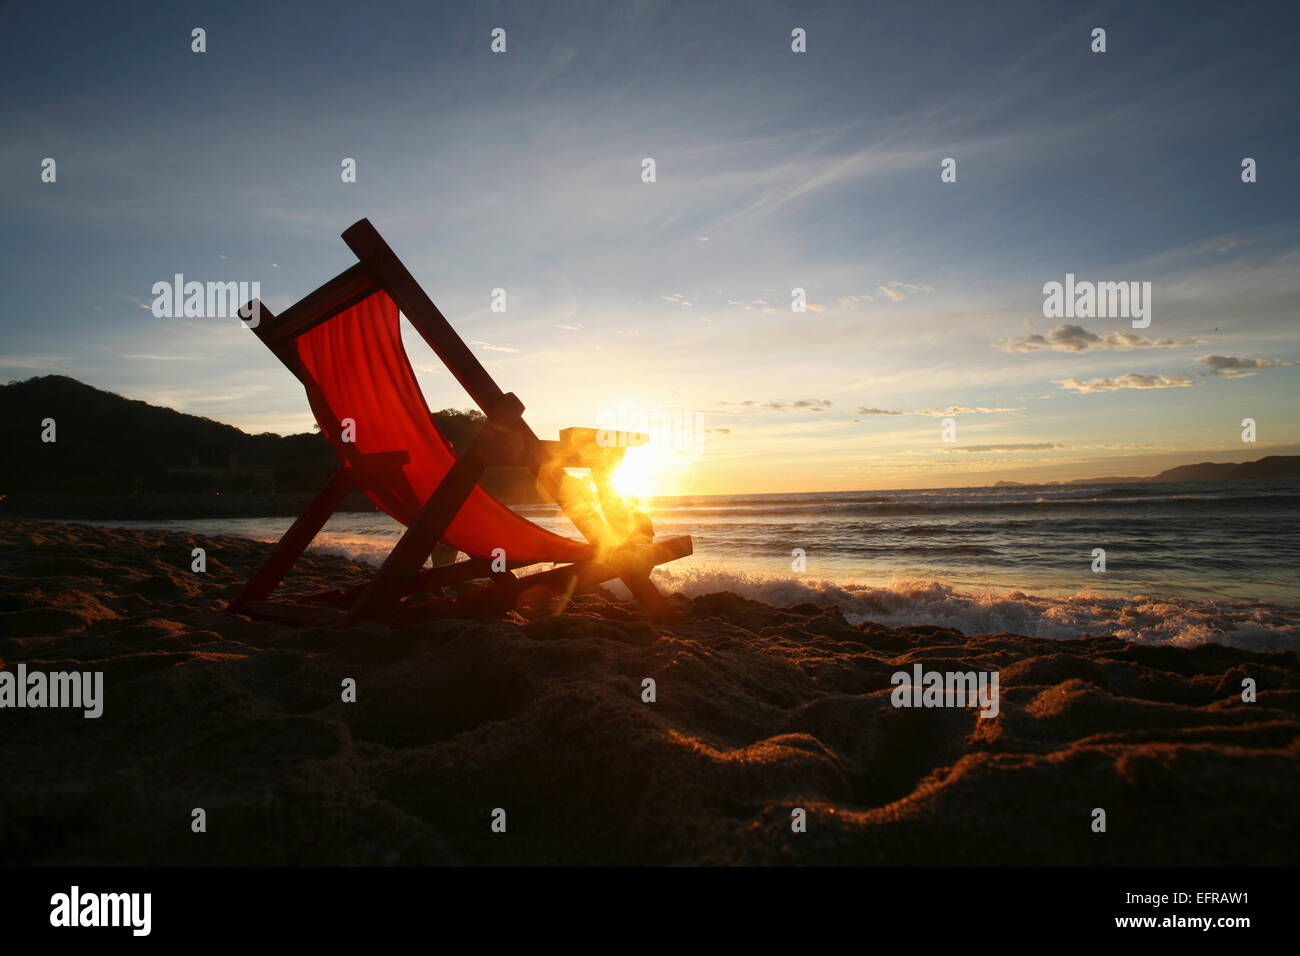 A chair on the sand facing the water. - Stock Image